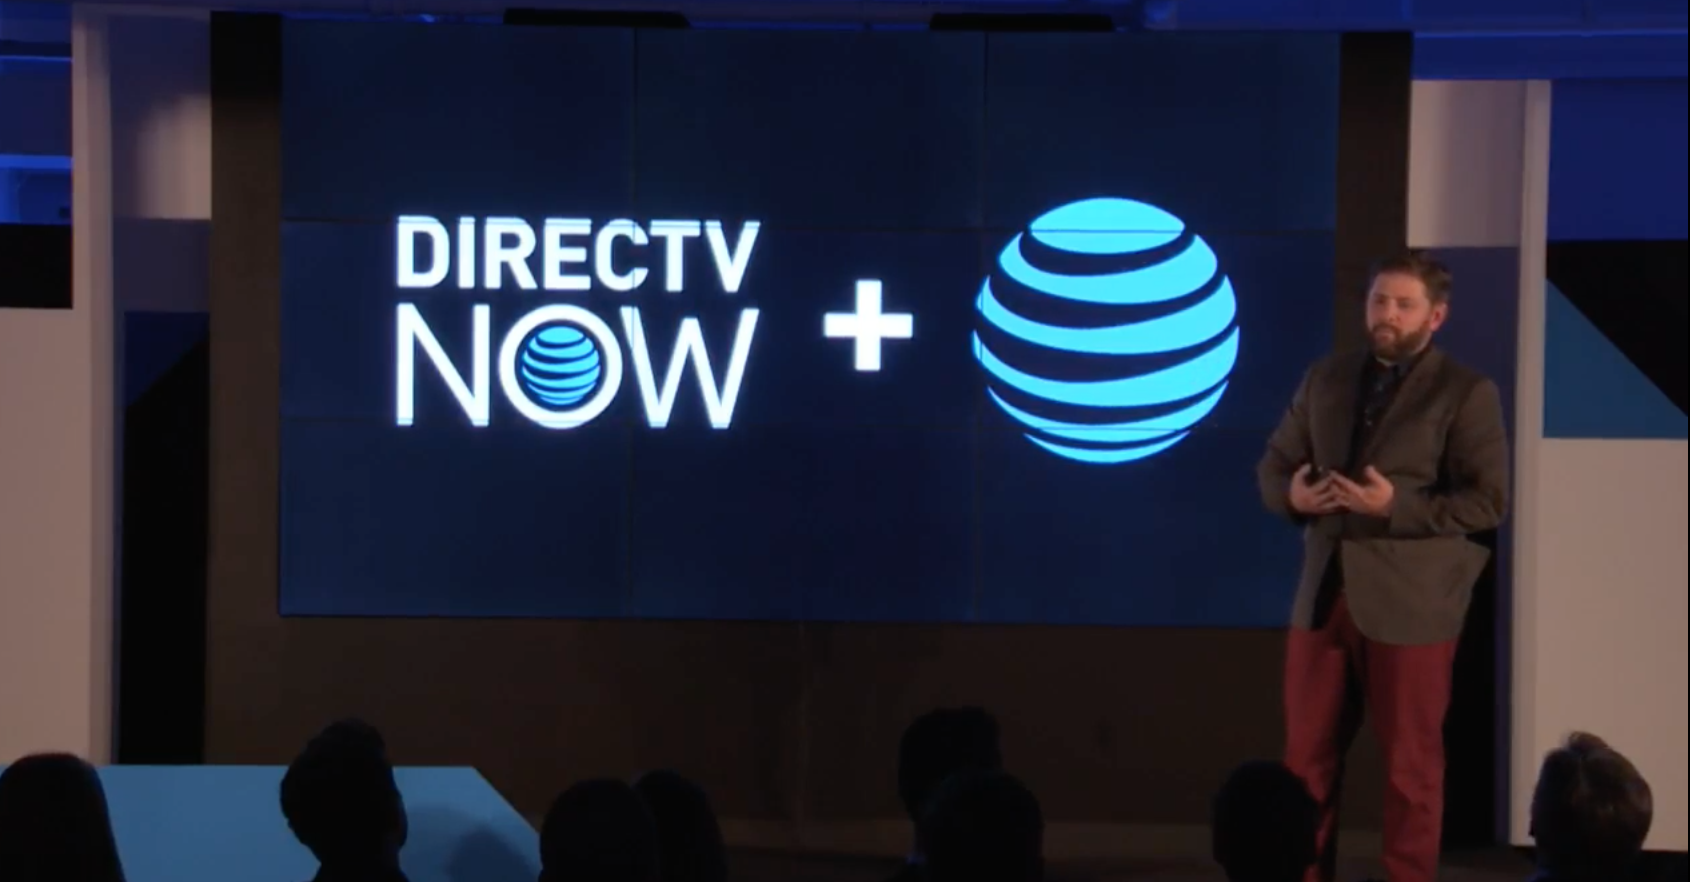 AT&T to customers complaining about DirecTV Now problems: We